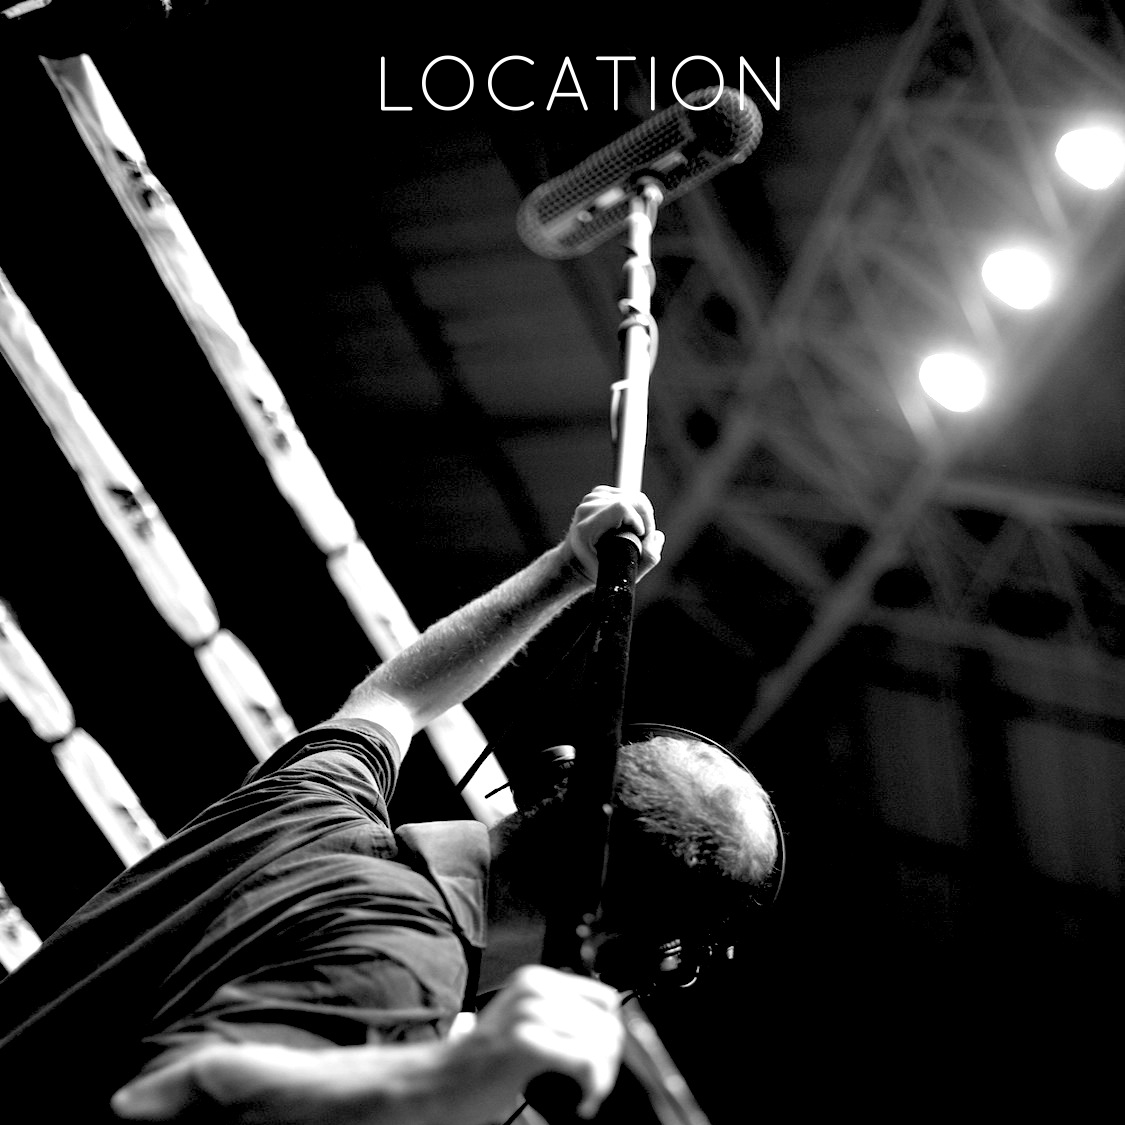 LOCATION SOUND SERVICES  Film, Television, Commercials  Sound Mixer  Boom Operator  Multitrack Recording  Equipment Rental  Ireland, UK and beyond